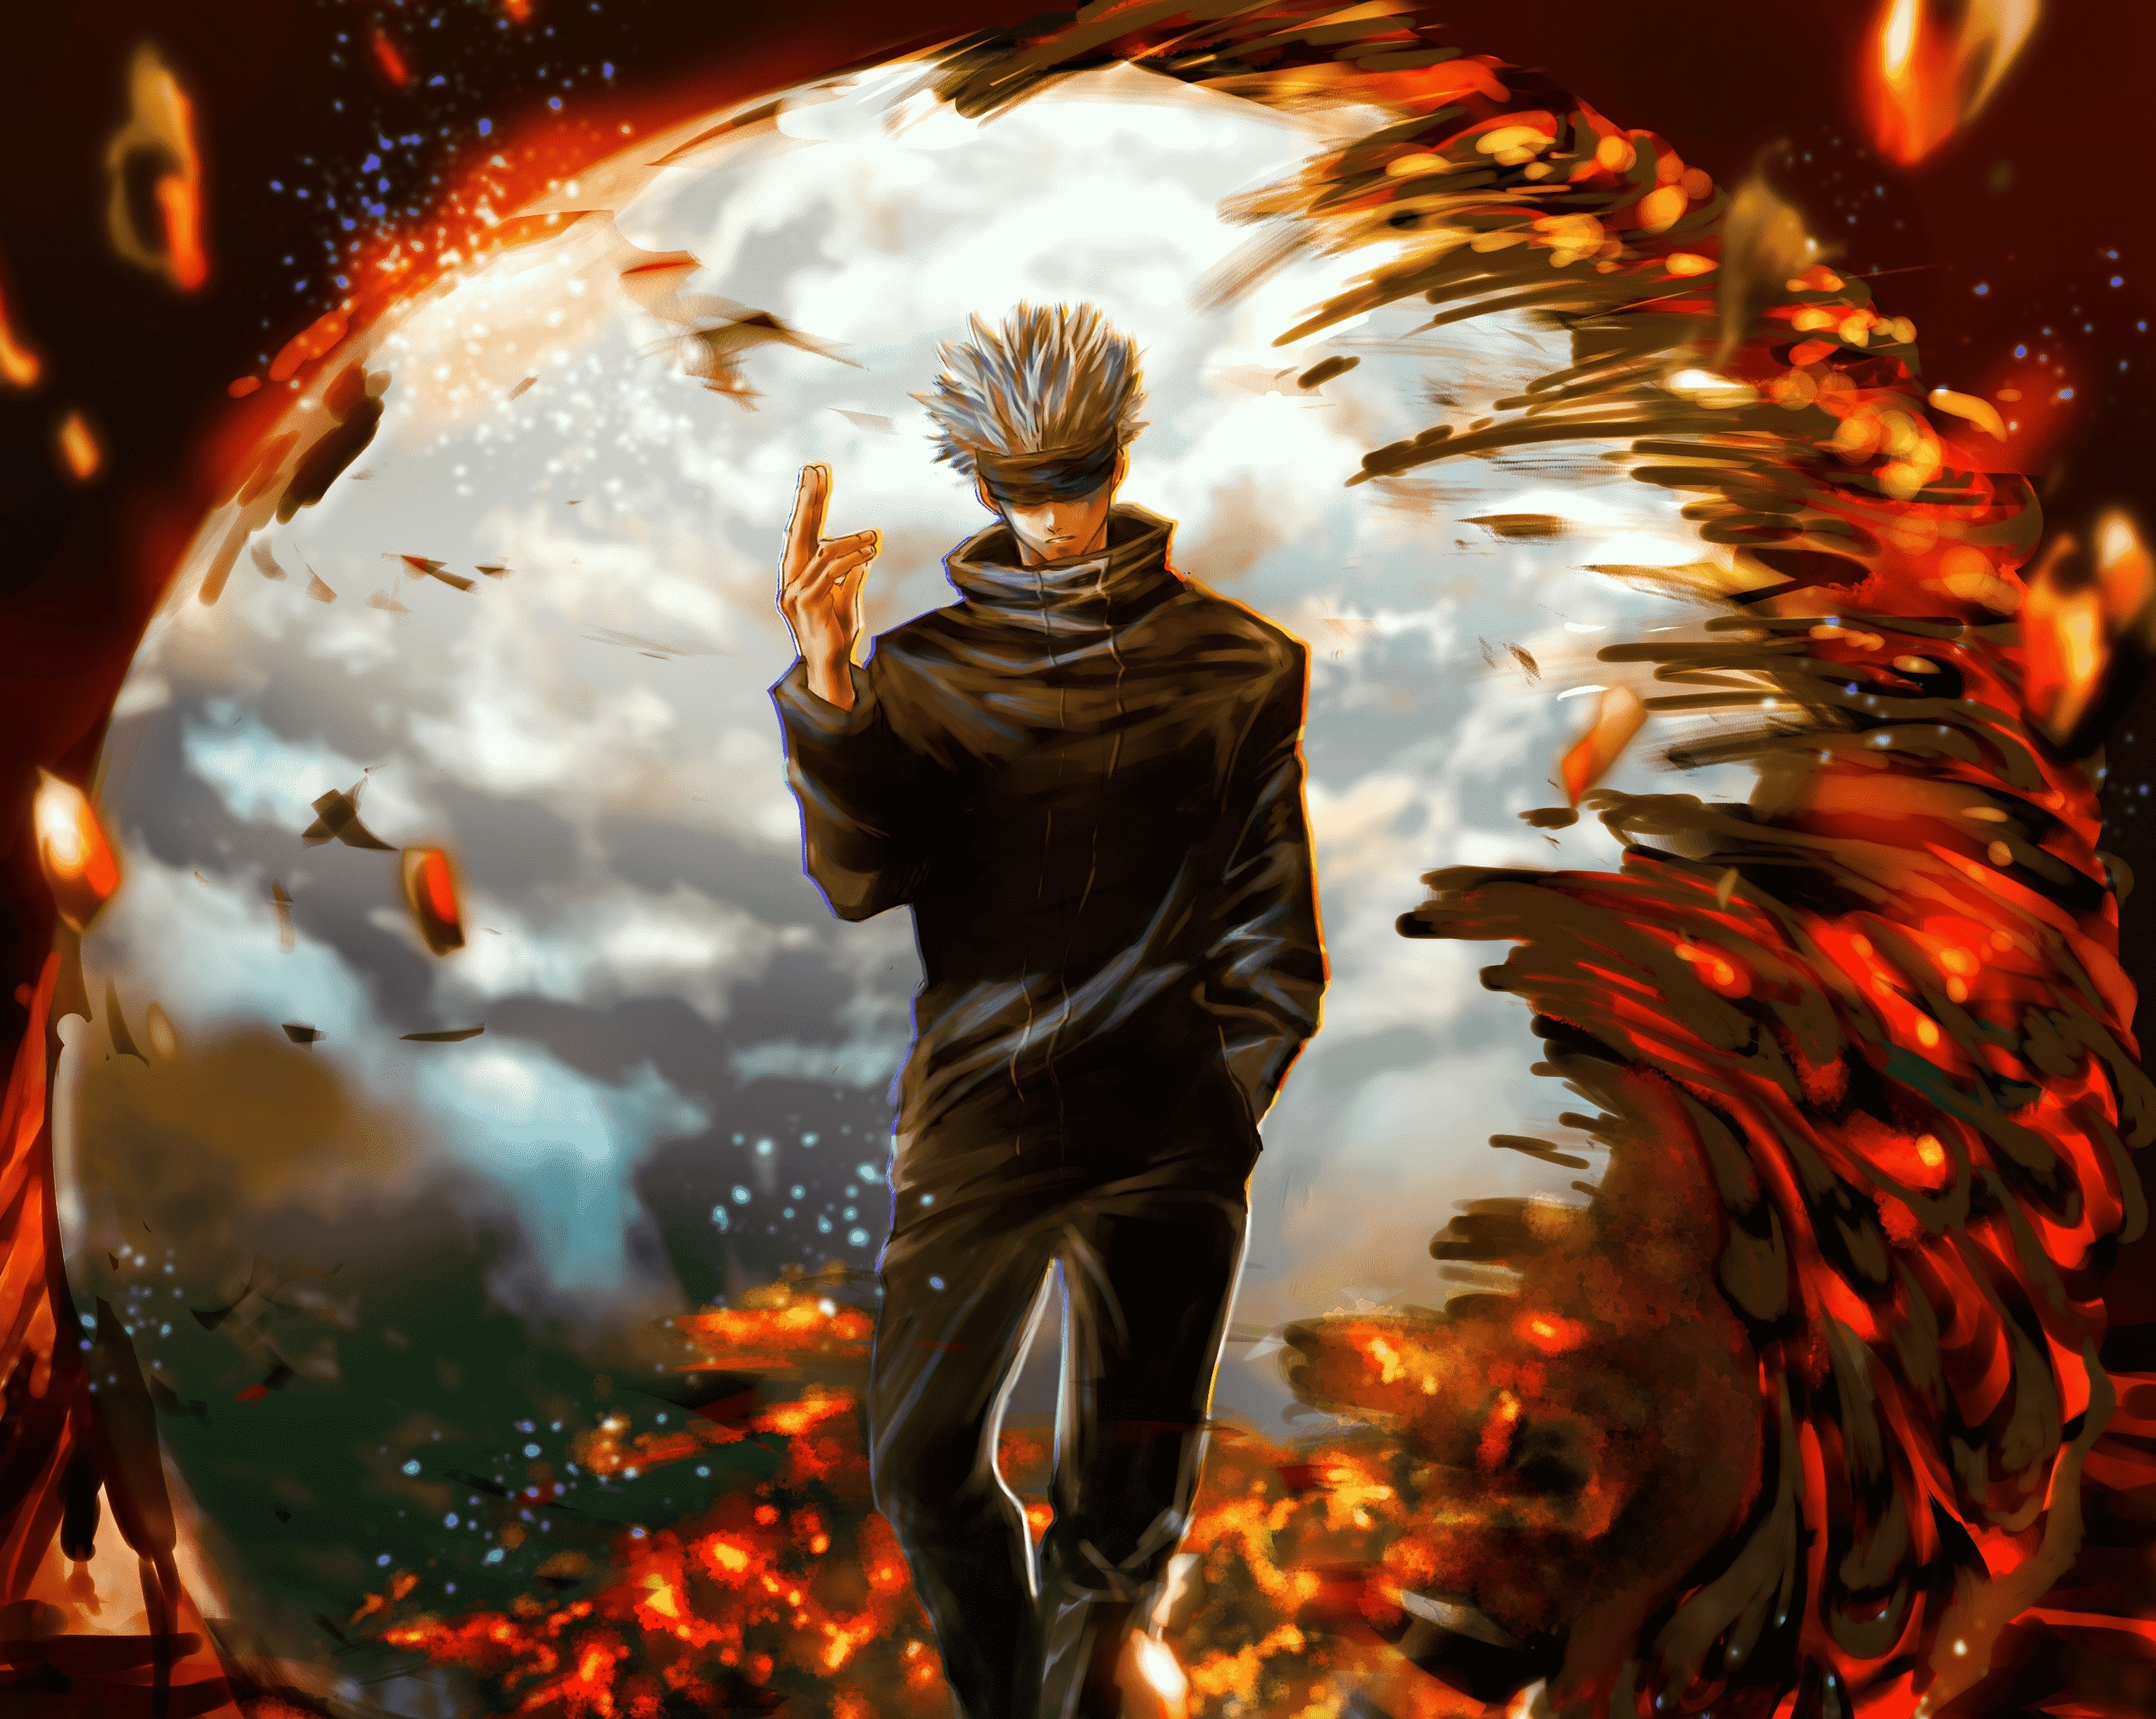 2560x1440 Satoru Gojo Jujutsu Kaisen 1440p Resolution Wallpaper Hd Anime 4k Wallpapers Images Photos And Background